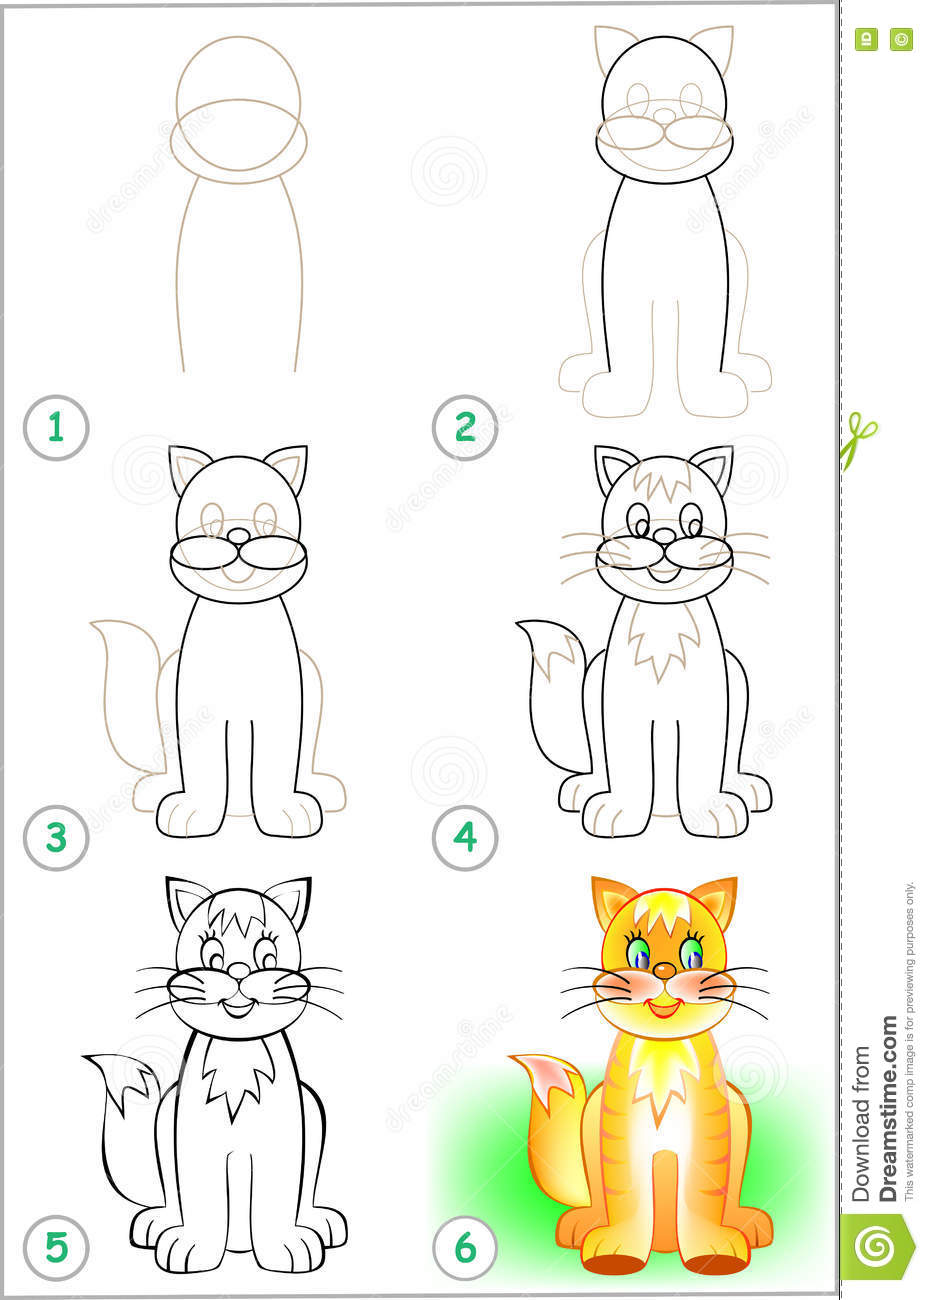 Page shows how to learn step by step to draw a cat